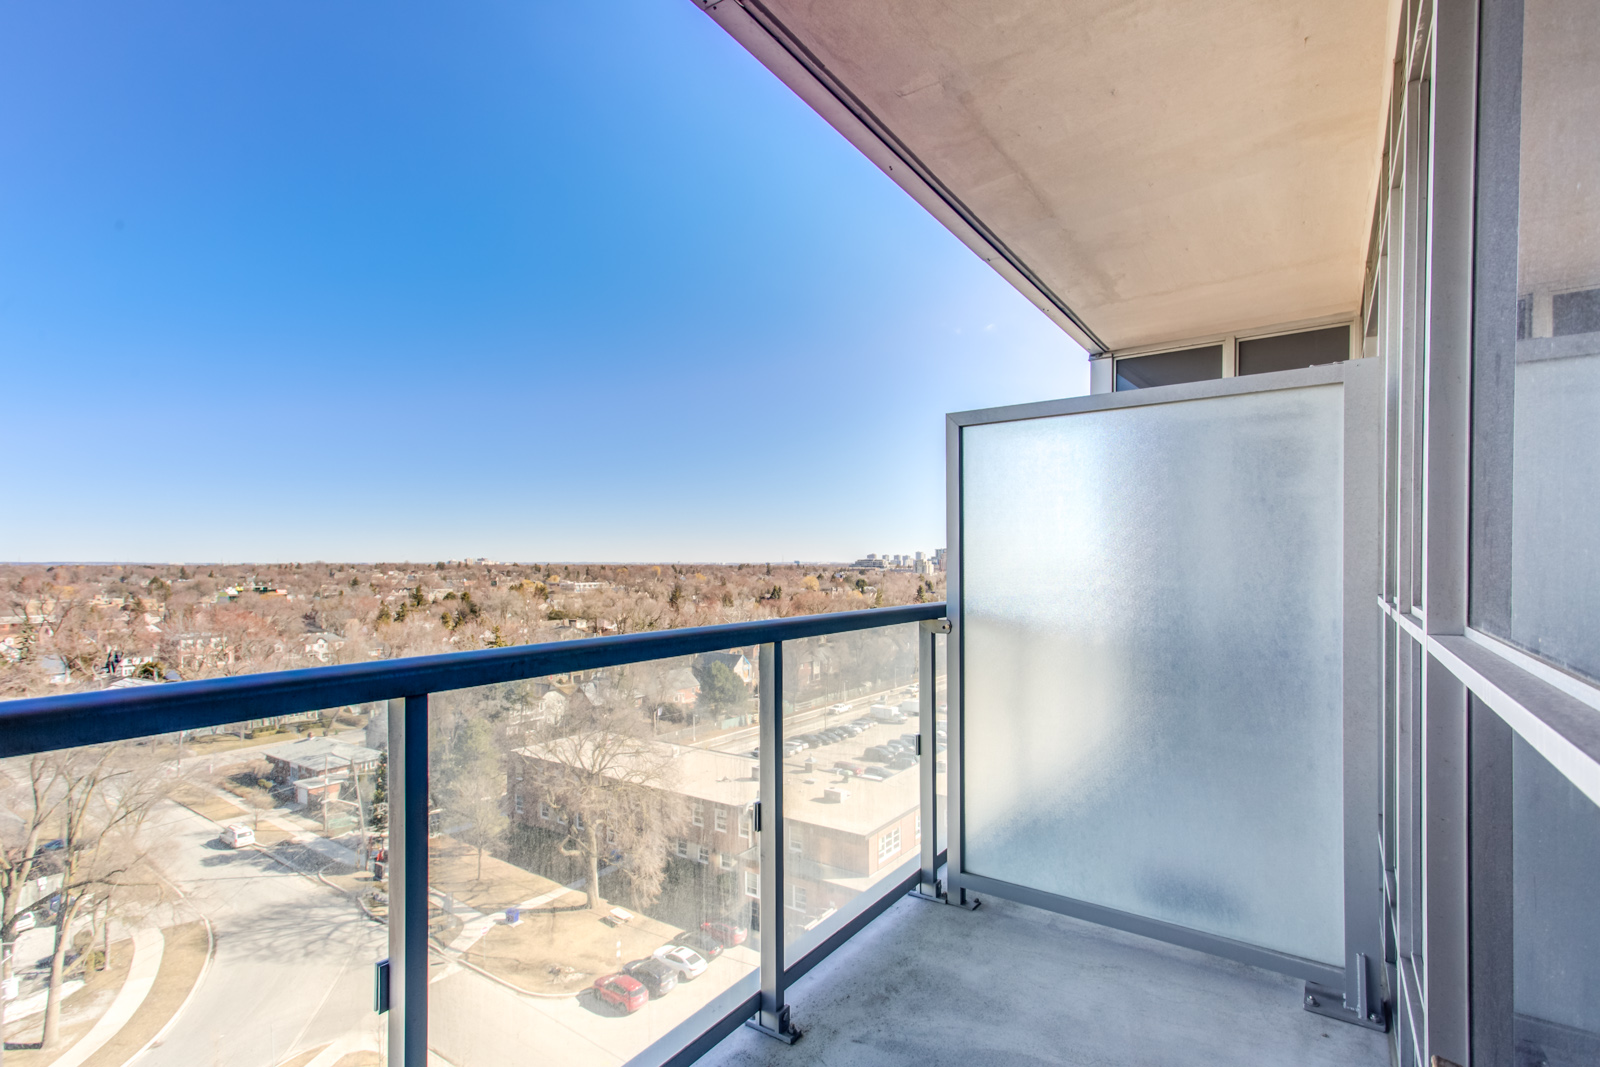 Photo of 120 Harrison Garden Unit 1025 balcony and its glass panels.